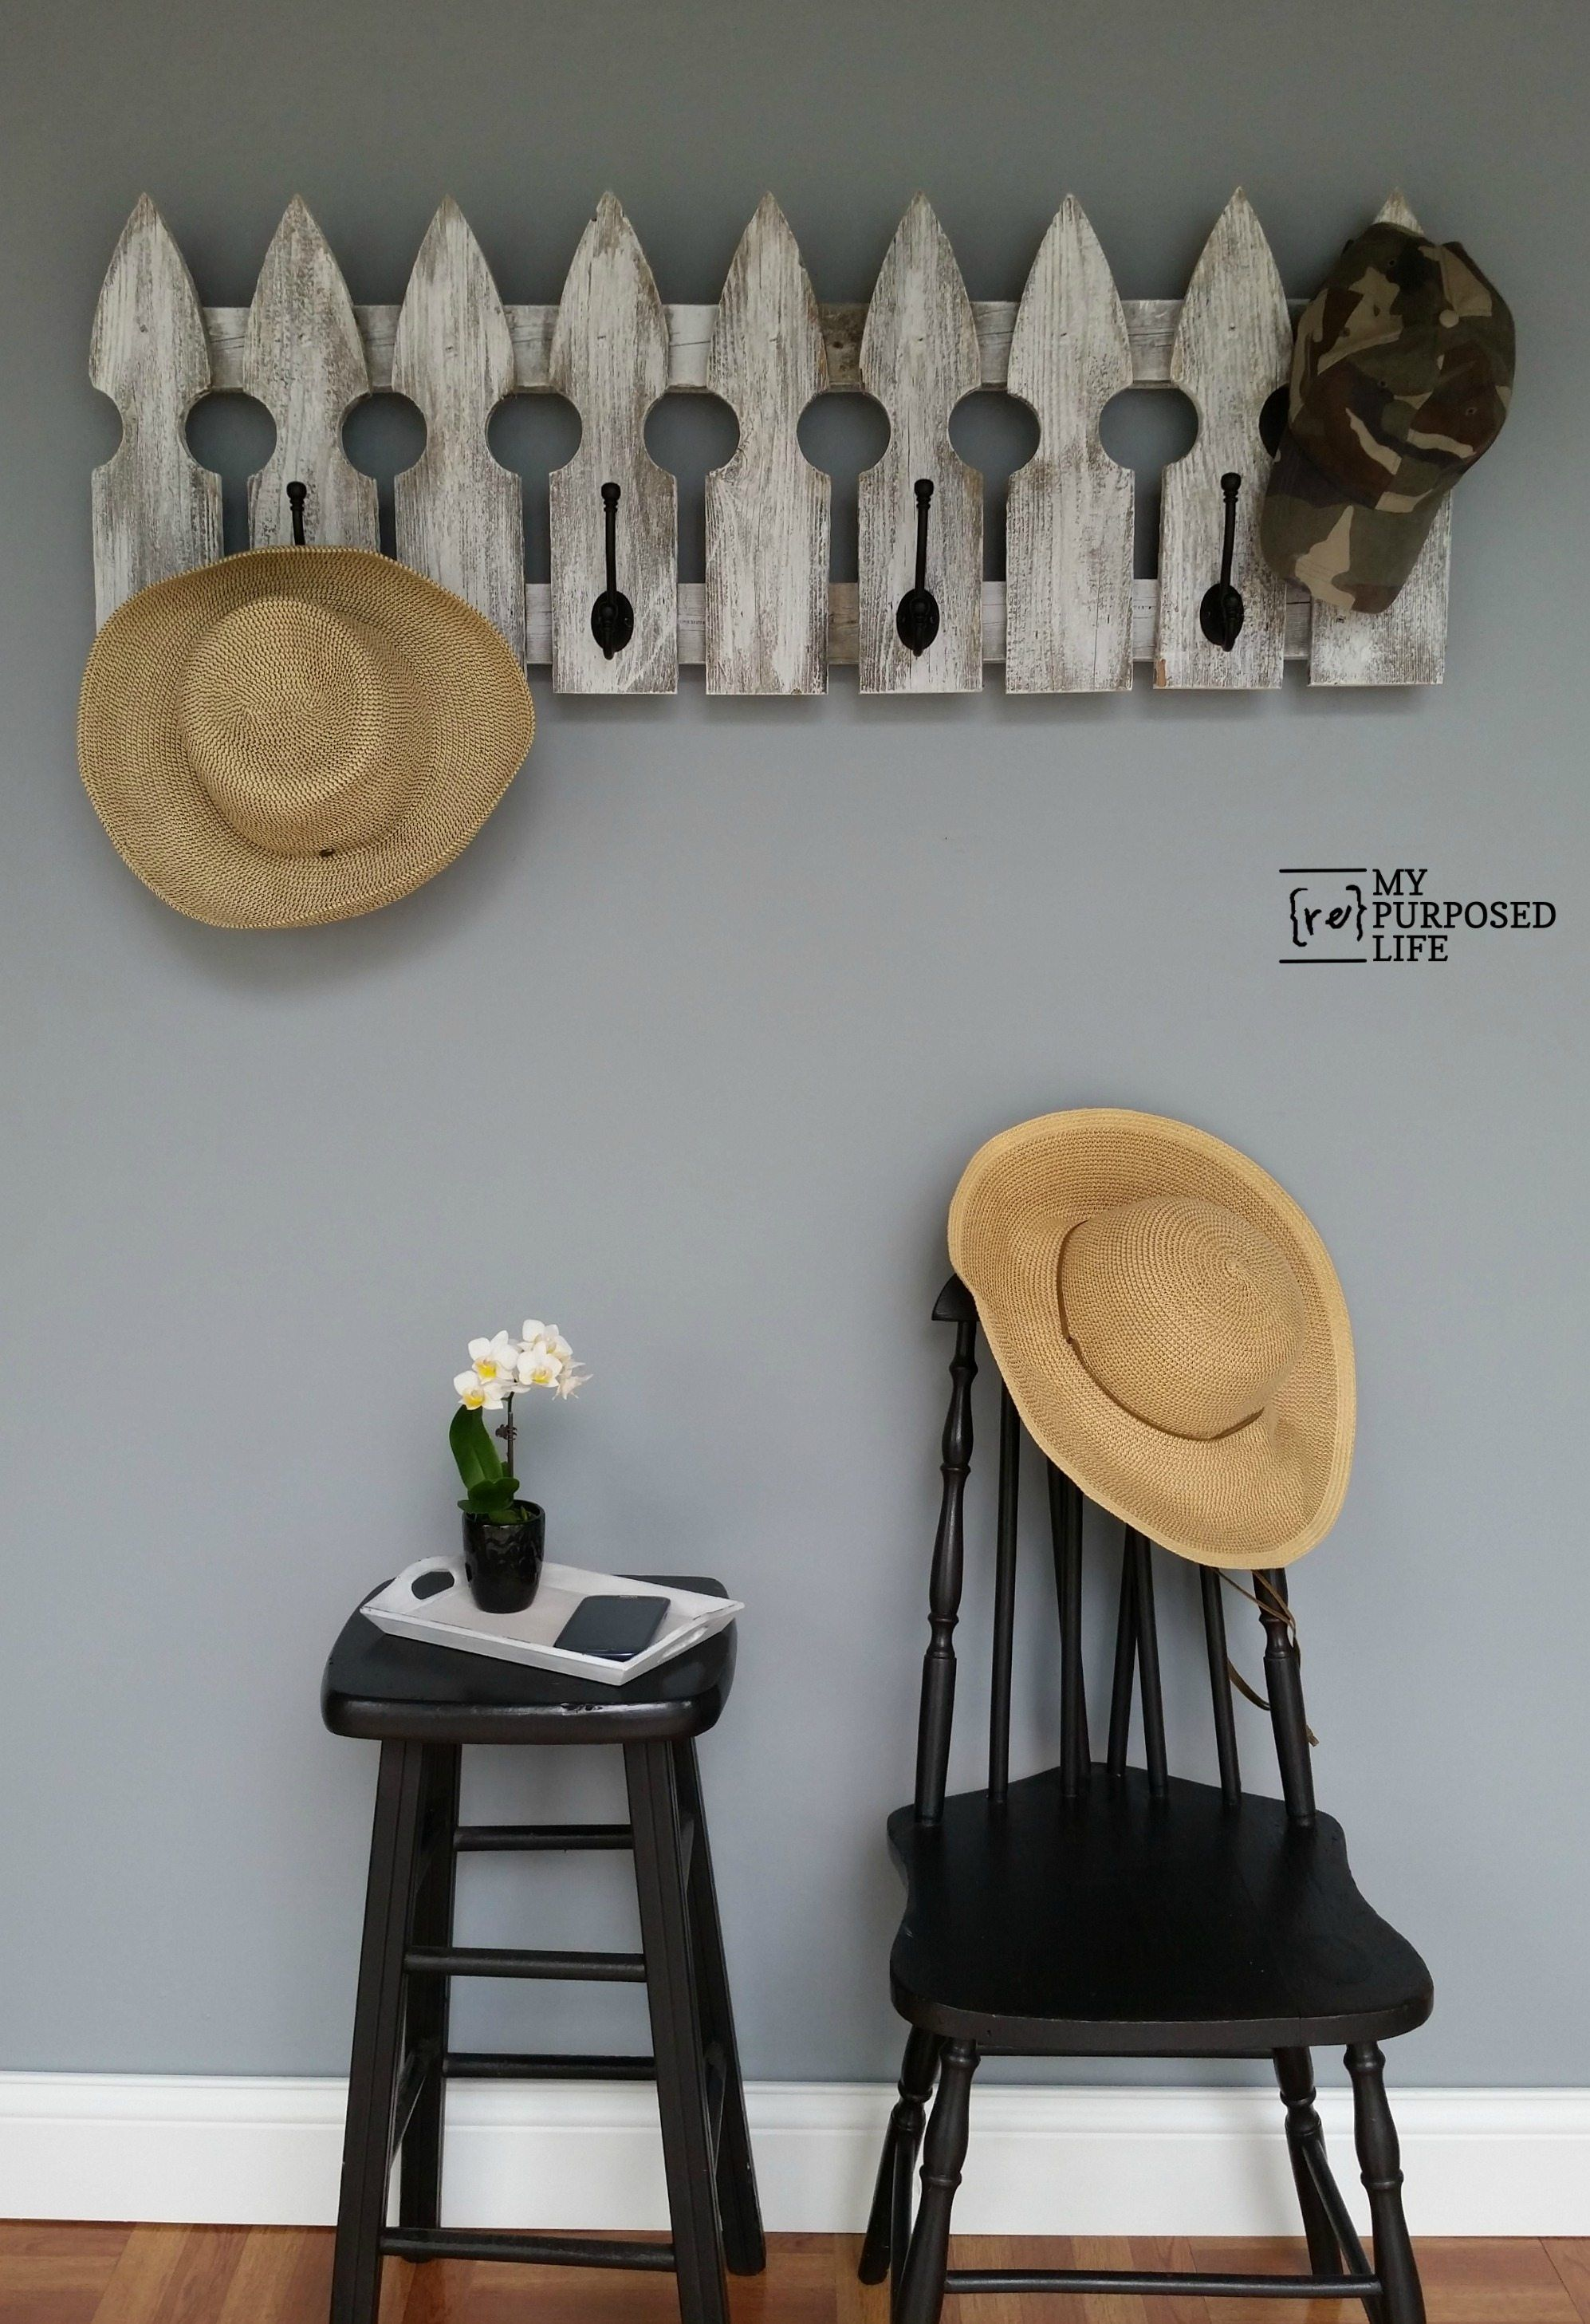 Whitewashed Picket Fence Coat Rack How to make this quick and easy picket fence coat rack project The white wash is the icing on the cake to make this a perfect project f...